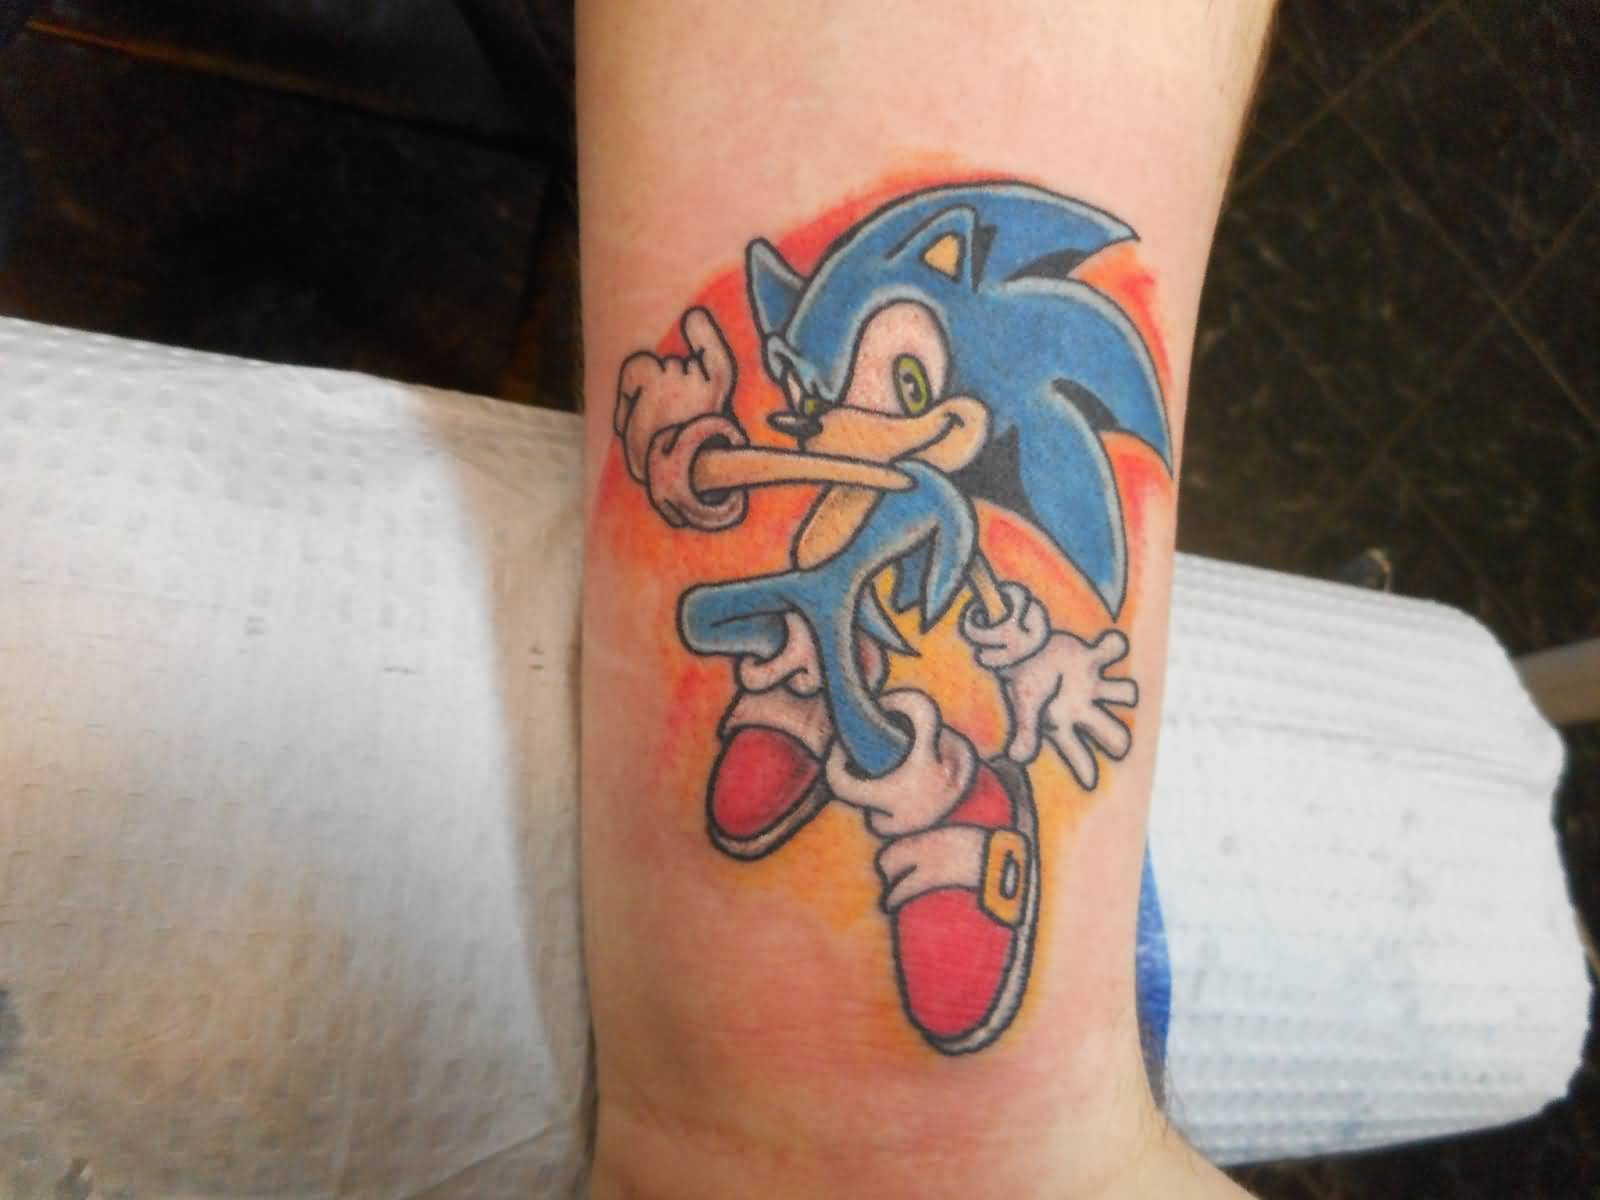 Colorful Sonic The Hedgehog Tattoo On Wrist